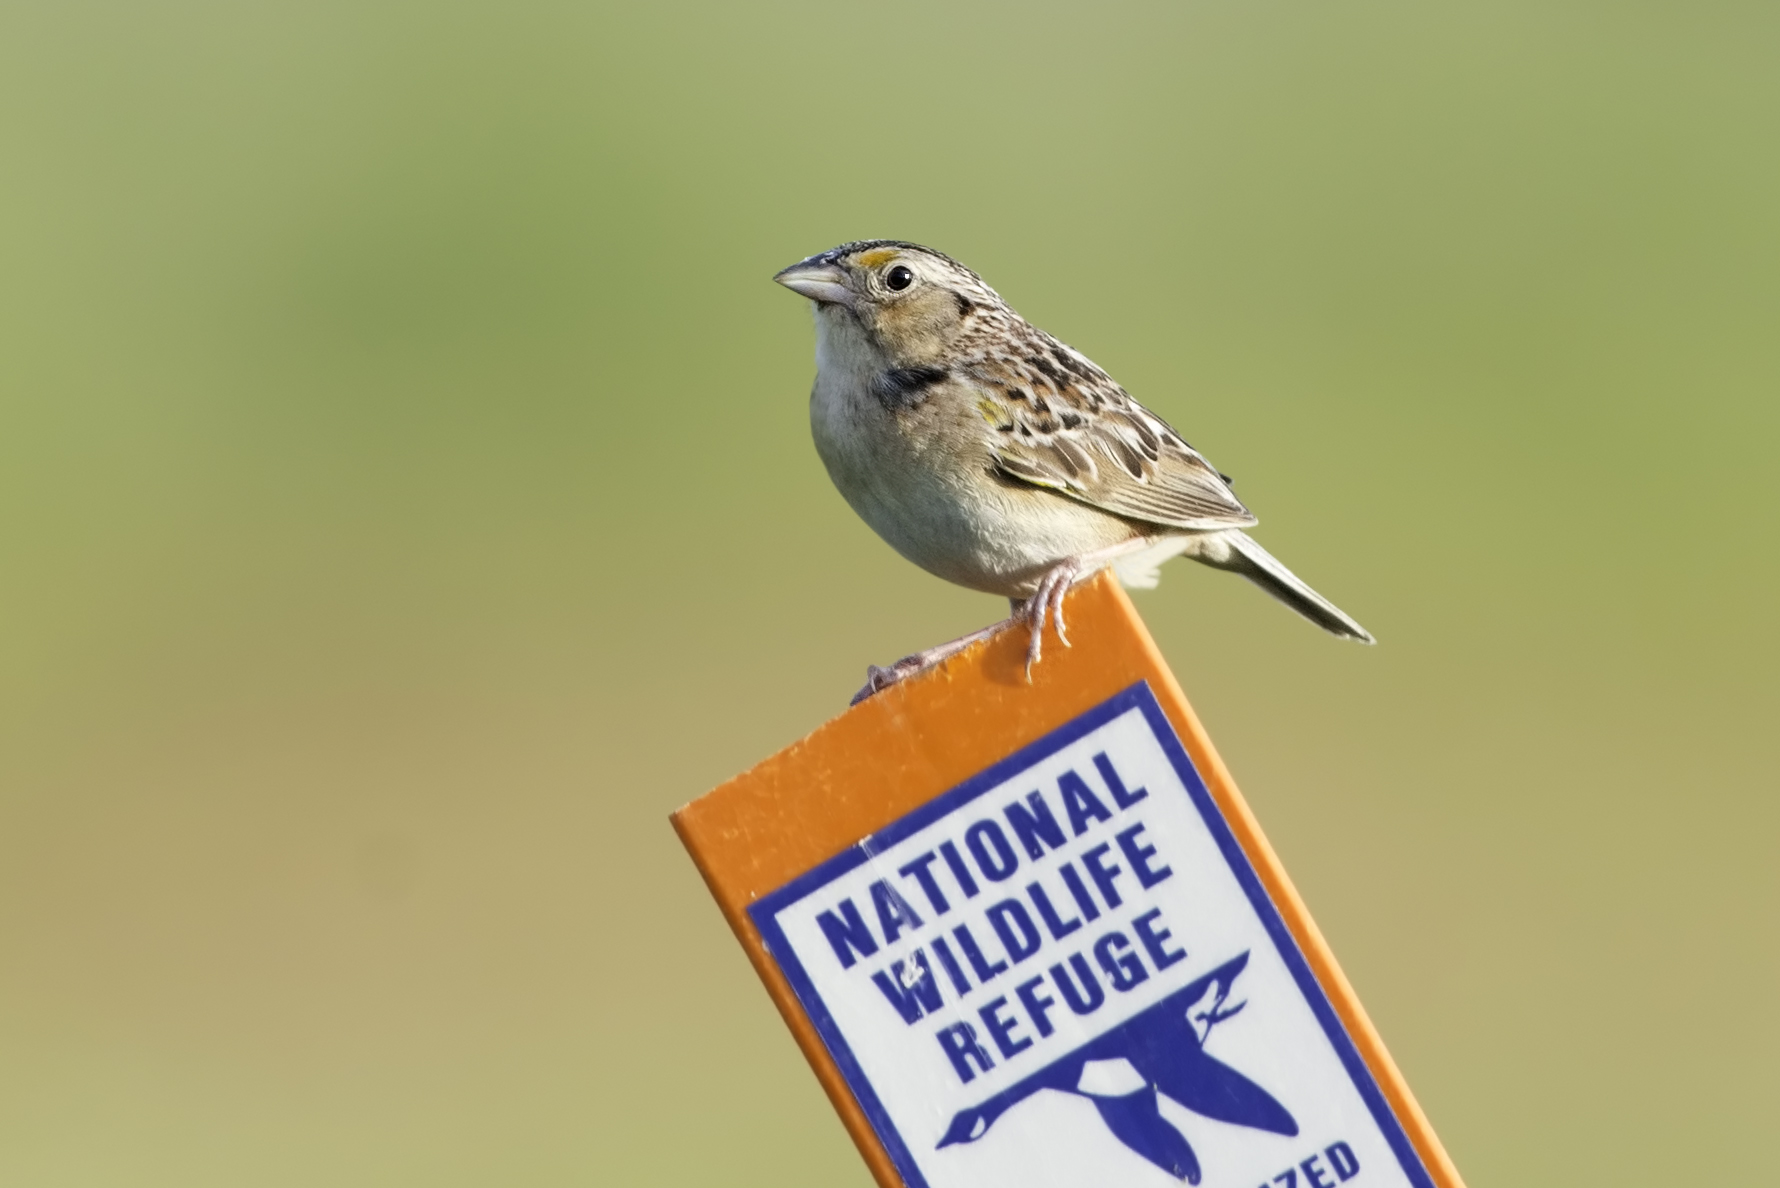 """- Grasshopper Sparrow (Ammodramus savannarum)Grasshopper Sparrows live in open areas such as prairies and grasslands. Their diet consists of insects, and as their name suggests, is very grasshopper-based. They weigh 0.5-0.7 oz. and have a wingspan of 4.3-4.7 in. Grasshopper Sparrows are also named because of their song, which is a """"kip-kip-zeeeee"""" that resembles a grasshopper. They are protected on the US Migratory Bird list.Photo Credits: Kelly Colgan Azar"""